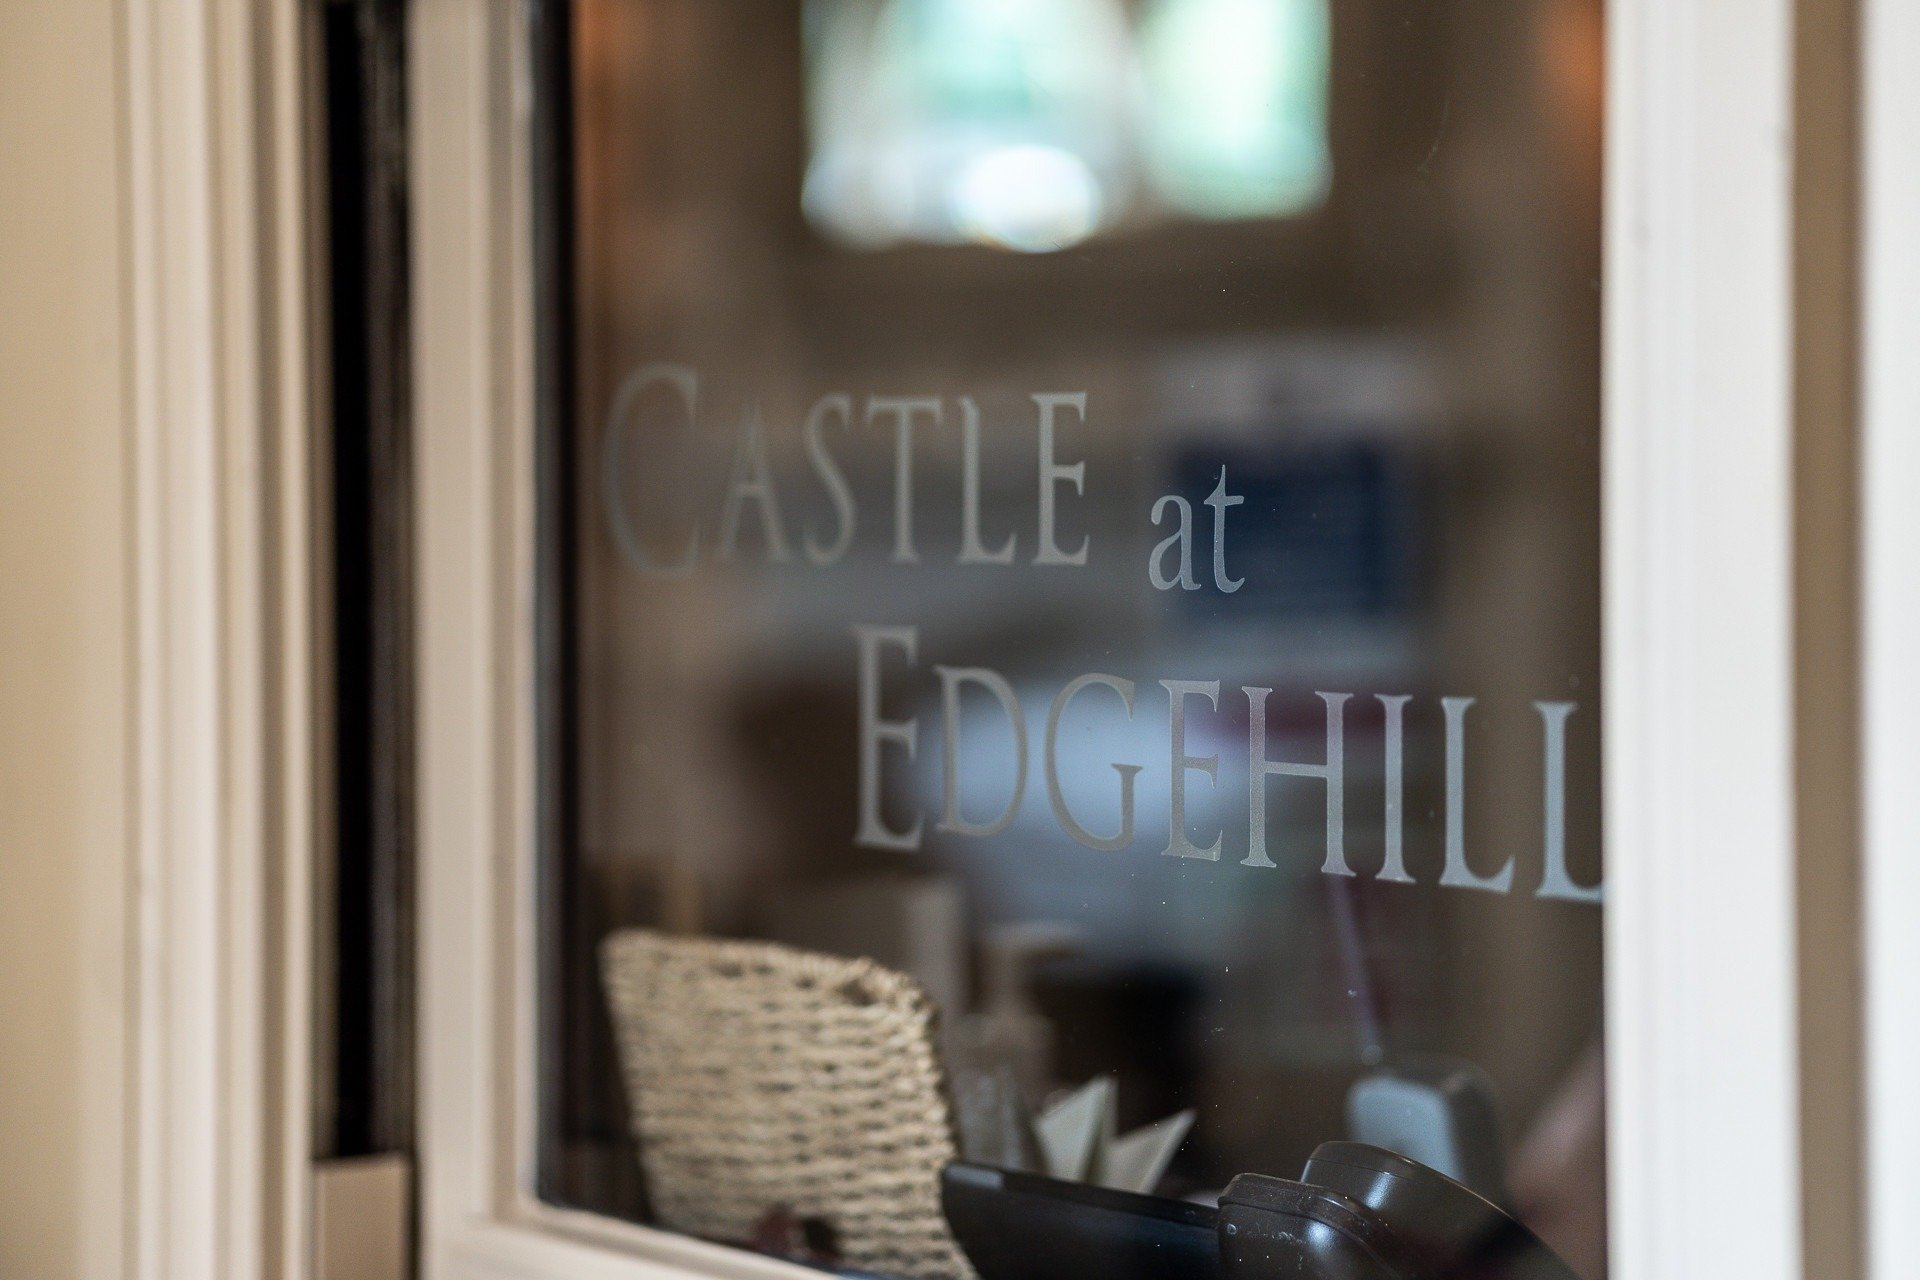 Enjoy breakfast at the Castle